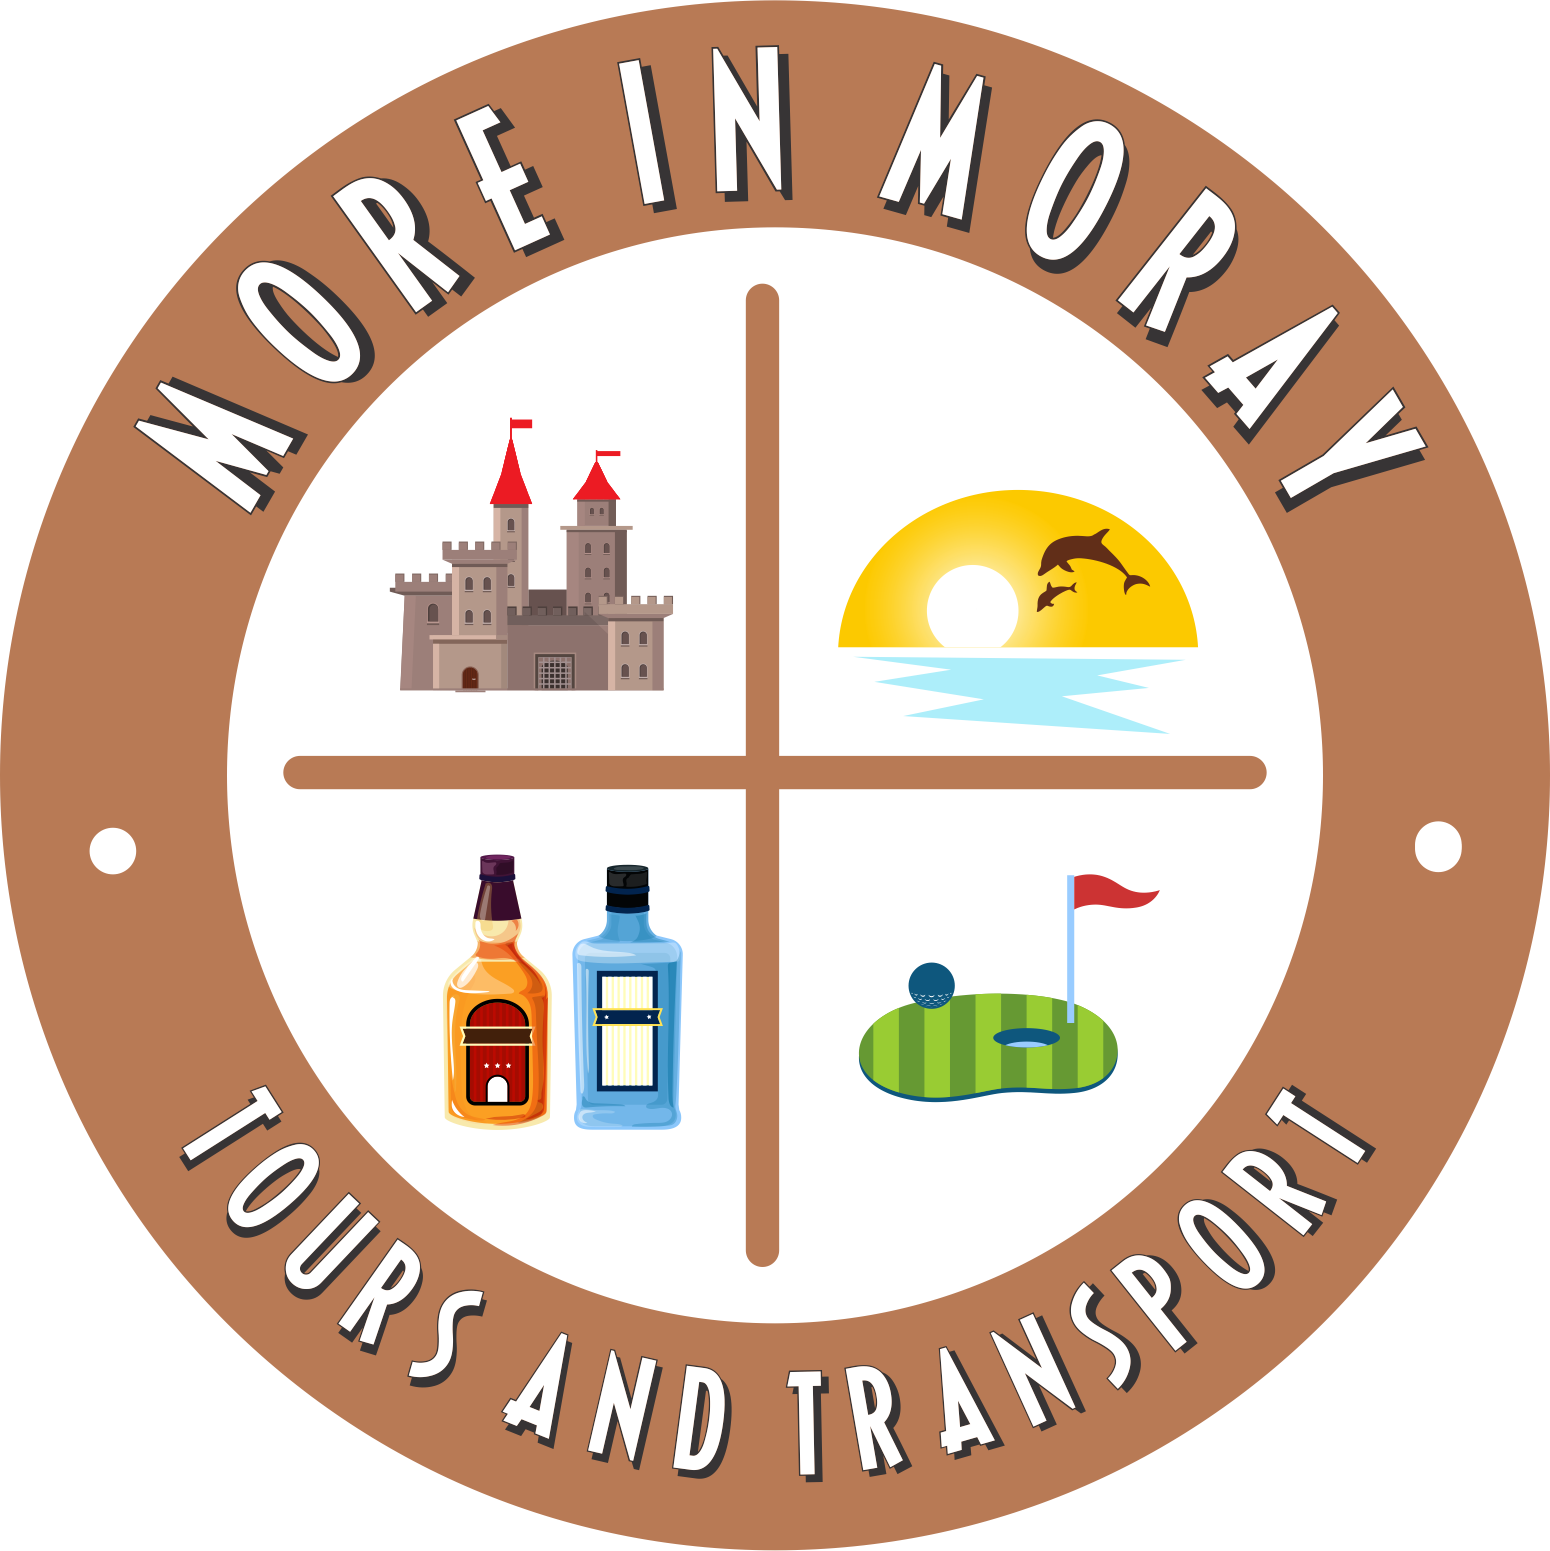 More in Moray Tours and Transport | We take you places